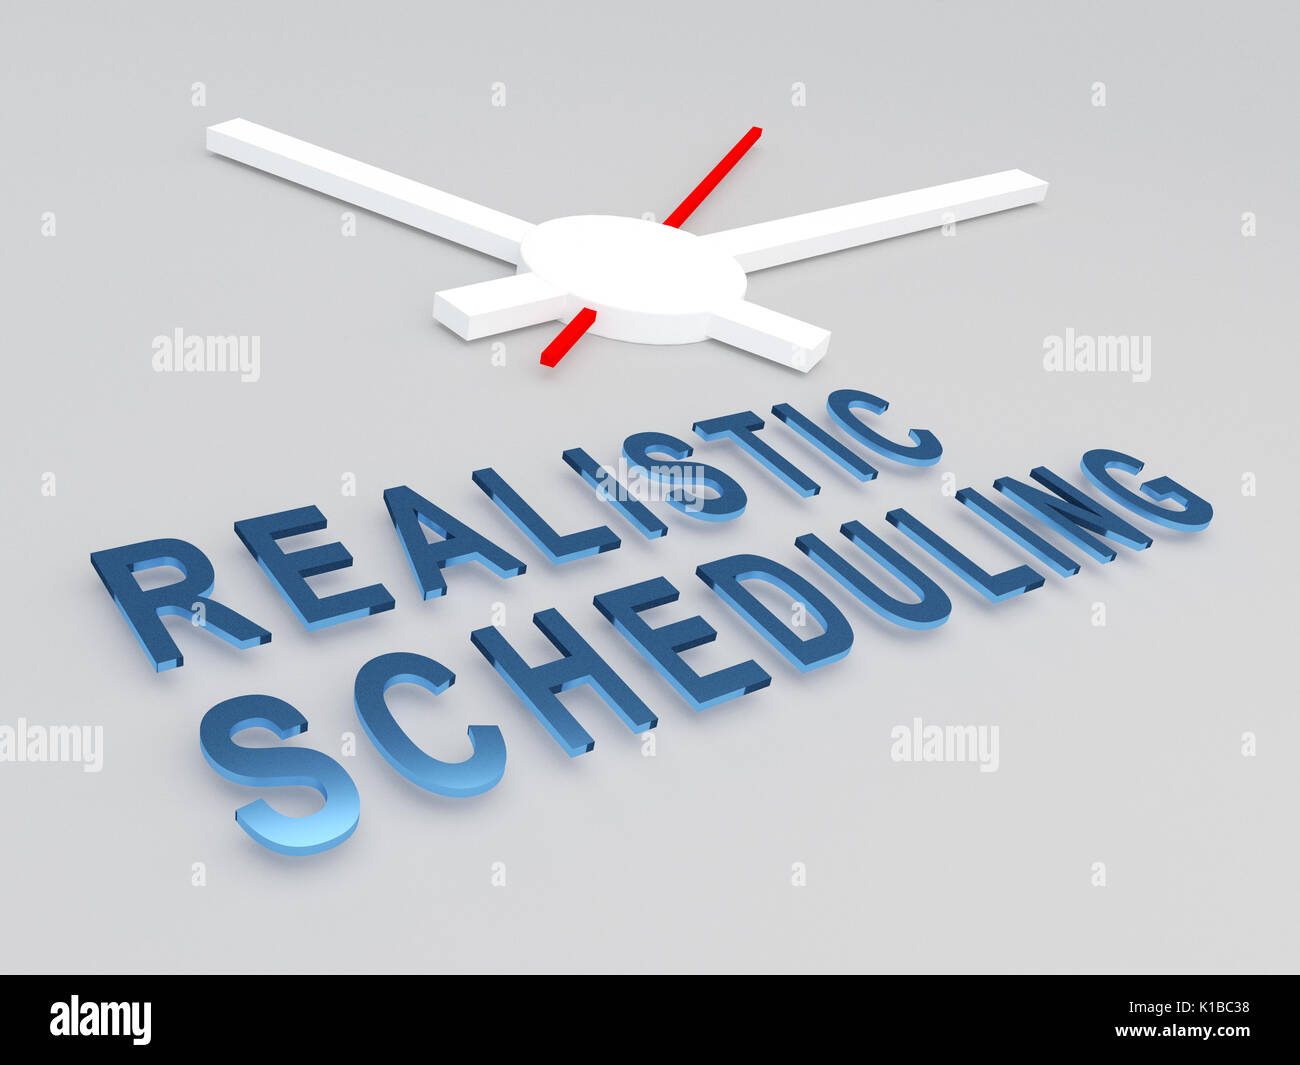 3D illustration of 'REALISTIC SCHEDULING' title with a clock as a background. Time concept. - Stock Image